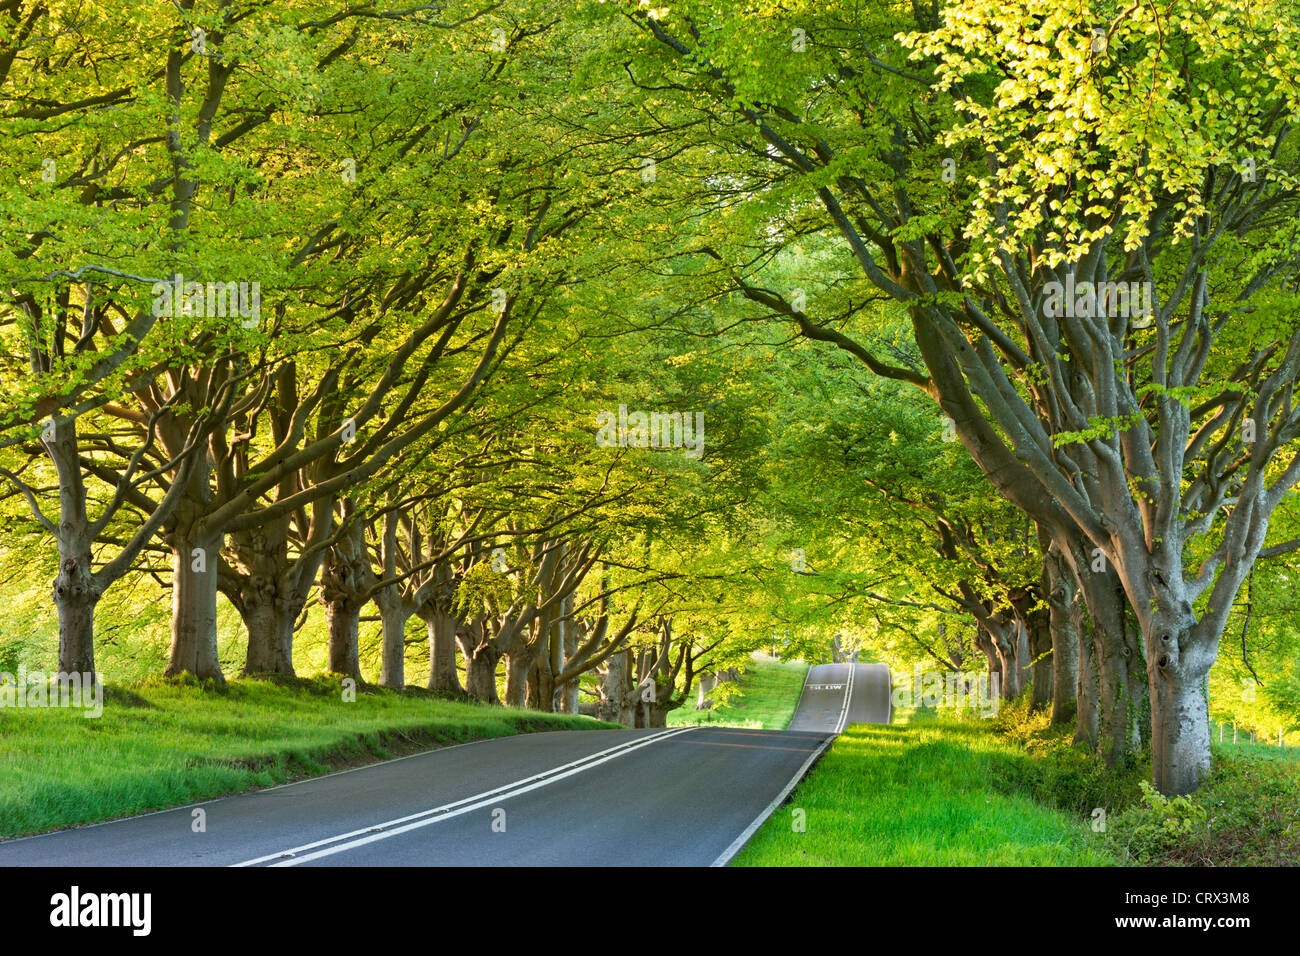 Beech tree lined road in springtime, Nr Wimborne, Dorset, England. Spring (May) 2012. Stock Photo